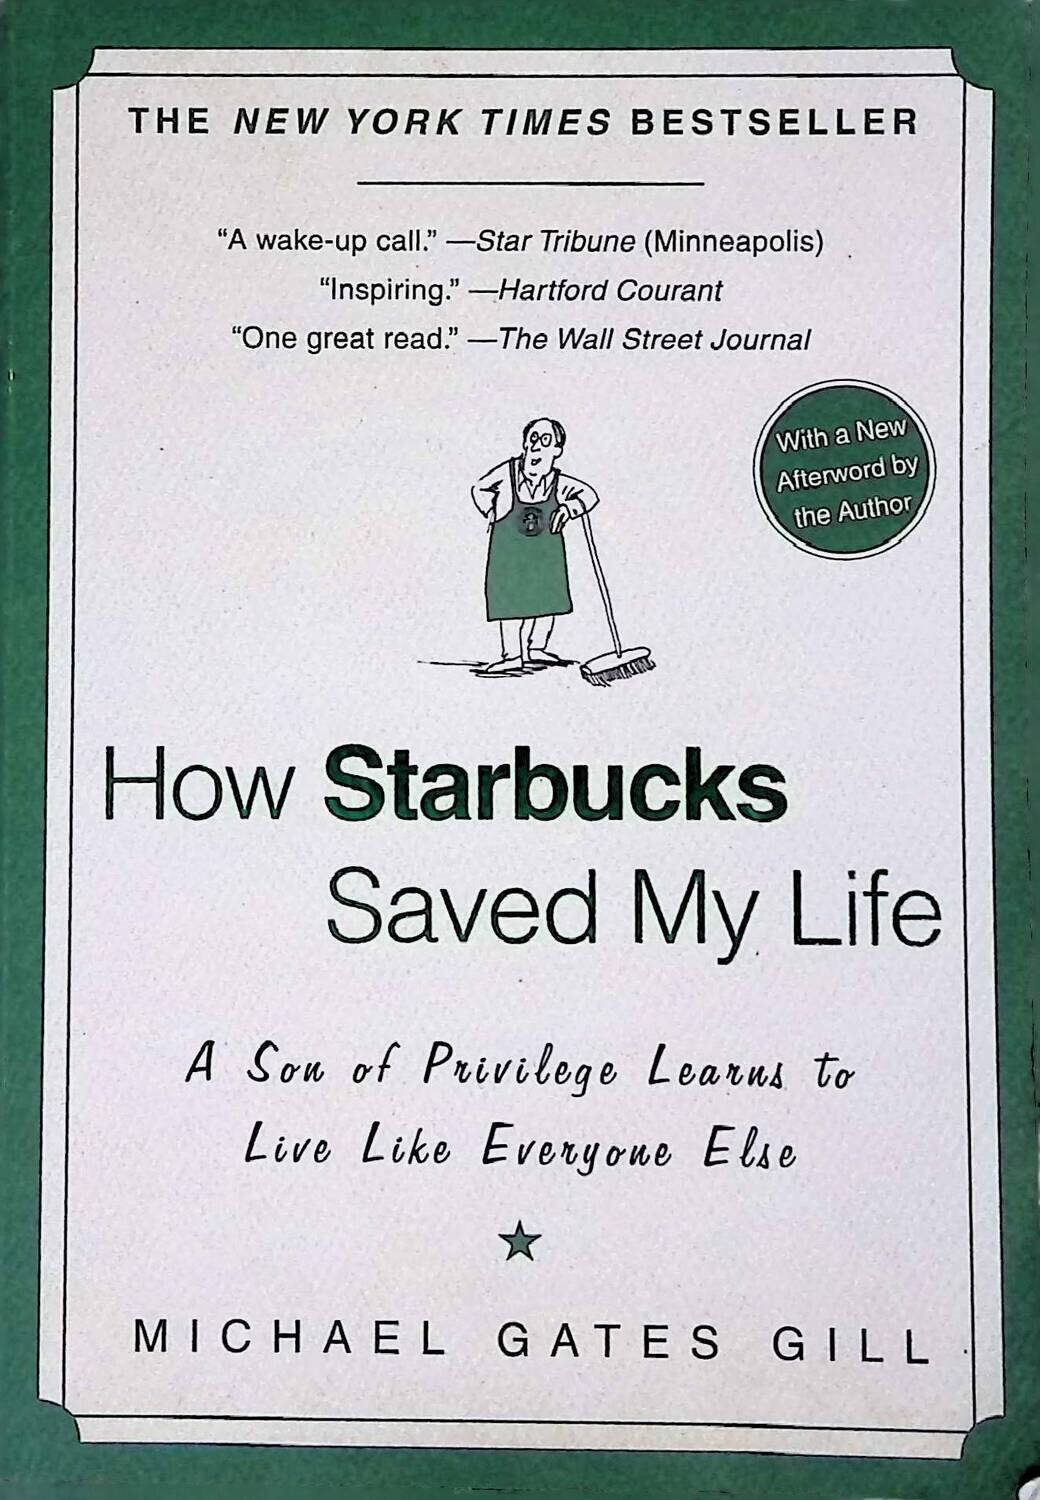 How Starbucks Saved My Life: A Son of Privilege Learns to Live Like Everyone Else; Michael Gates Gill